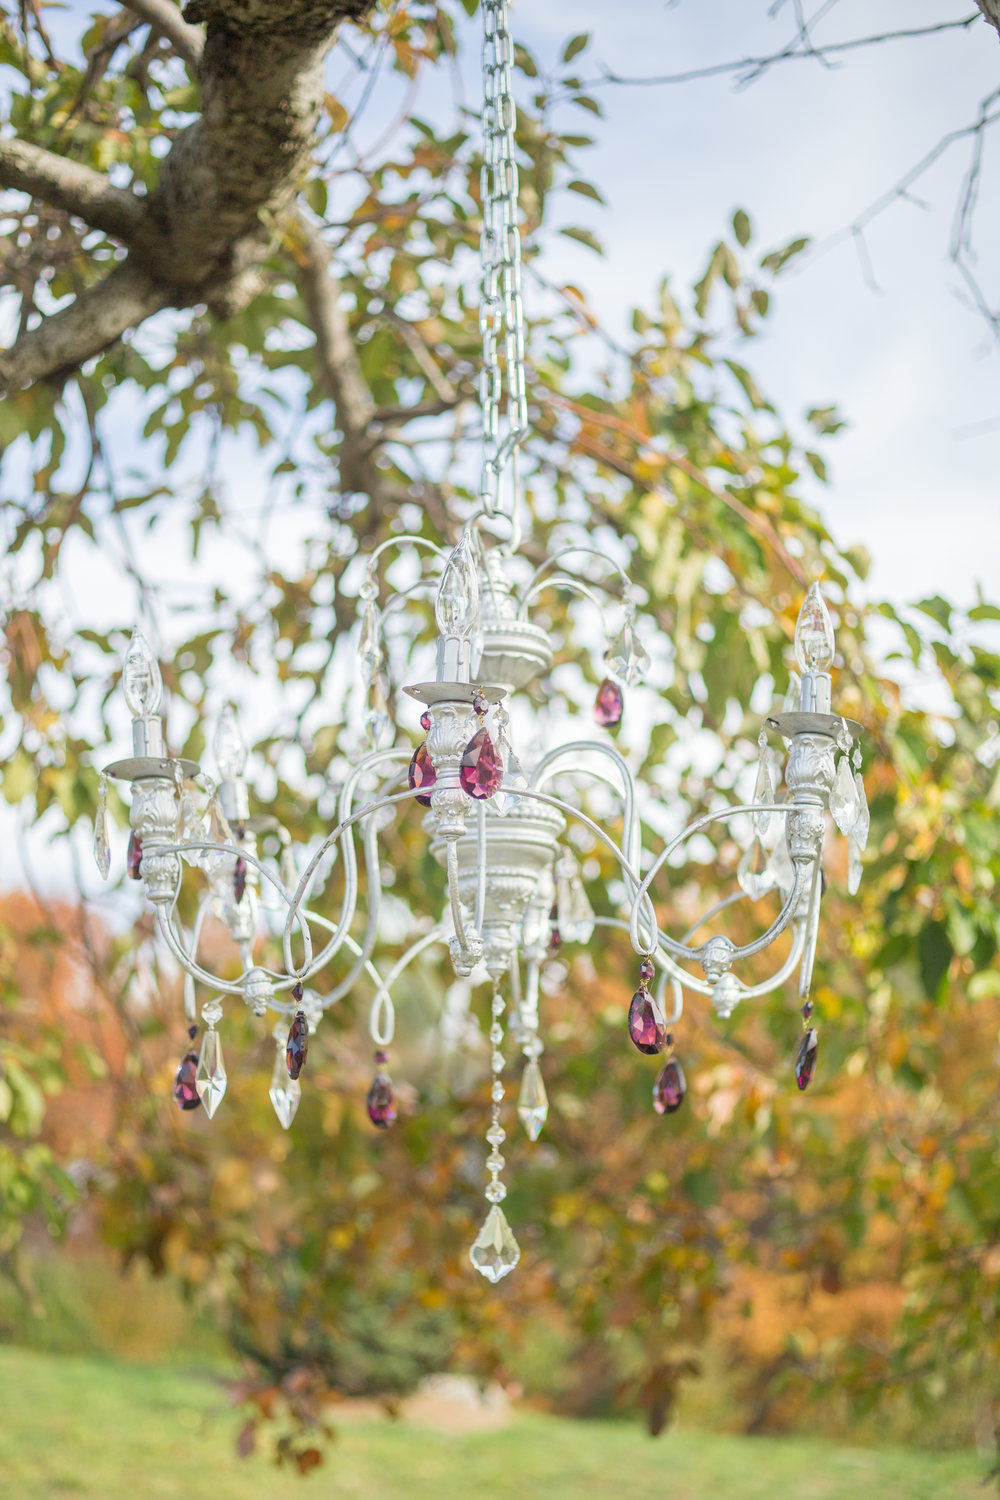 NYC Wedding Planner Ashley Douglass Events at Harvest Moon Farm Orchard with Social Decor (chandelier)